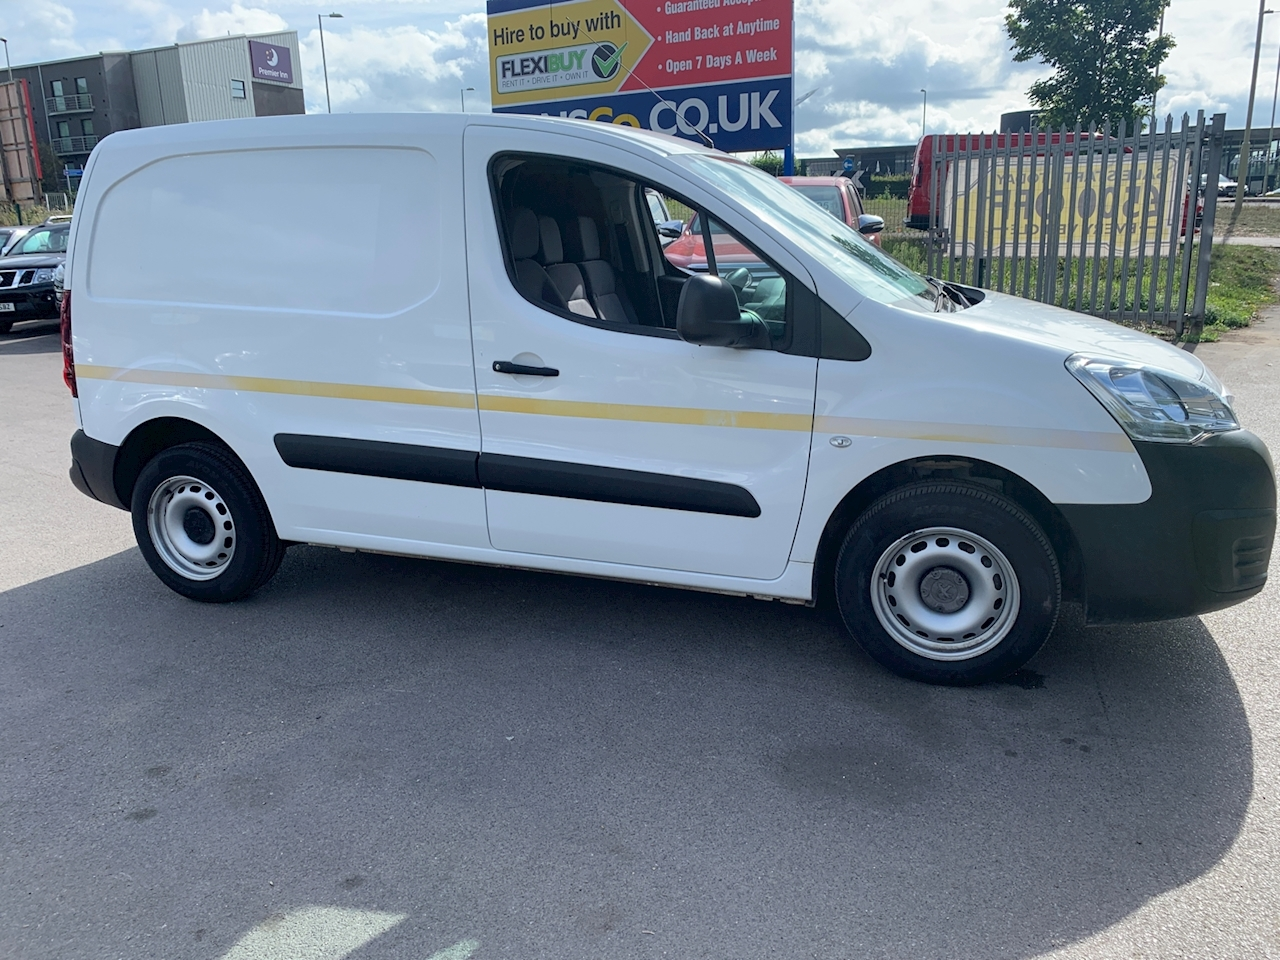 Partner Hdi Se L1 850 Panel Van 1.6 Manual Diesel